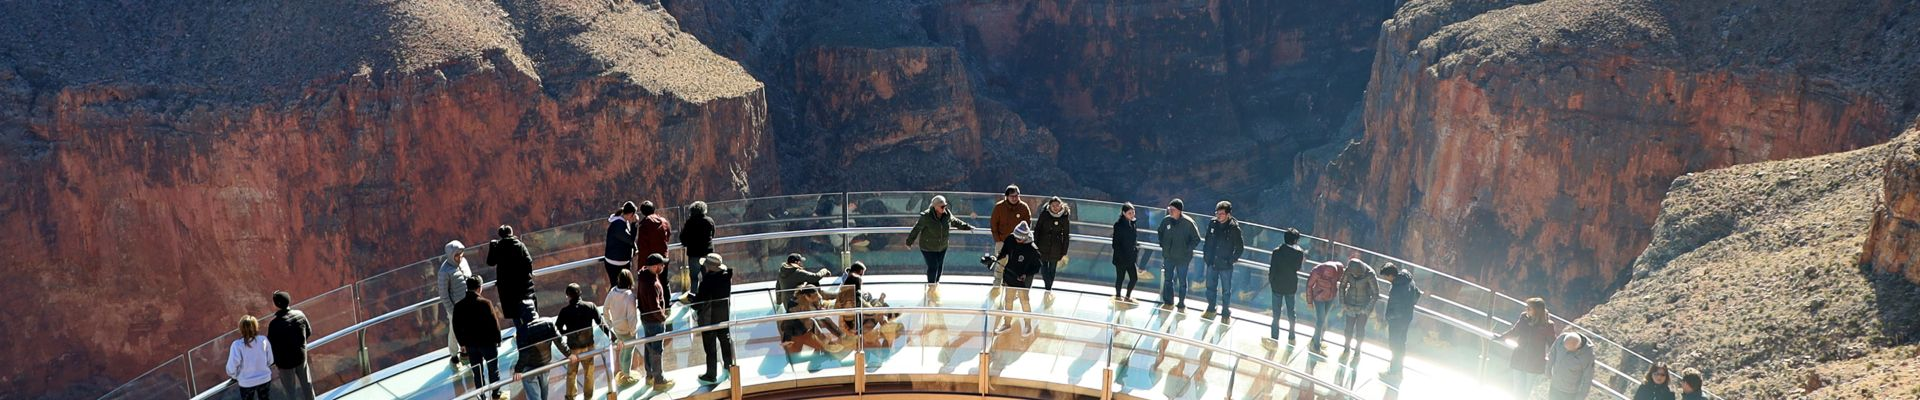 Guests standing on the Grand Canyon Skywalk at Grand Canyon West